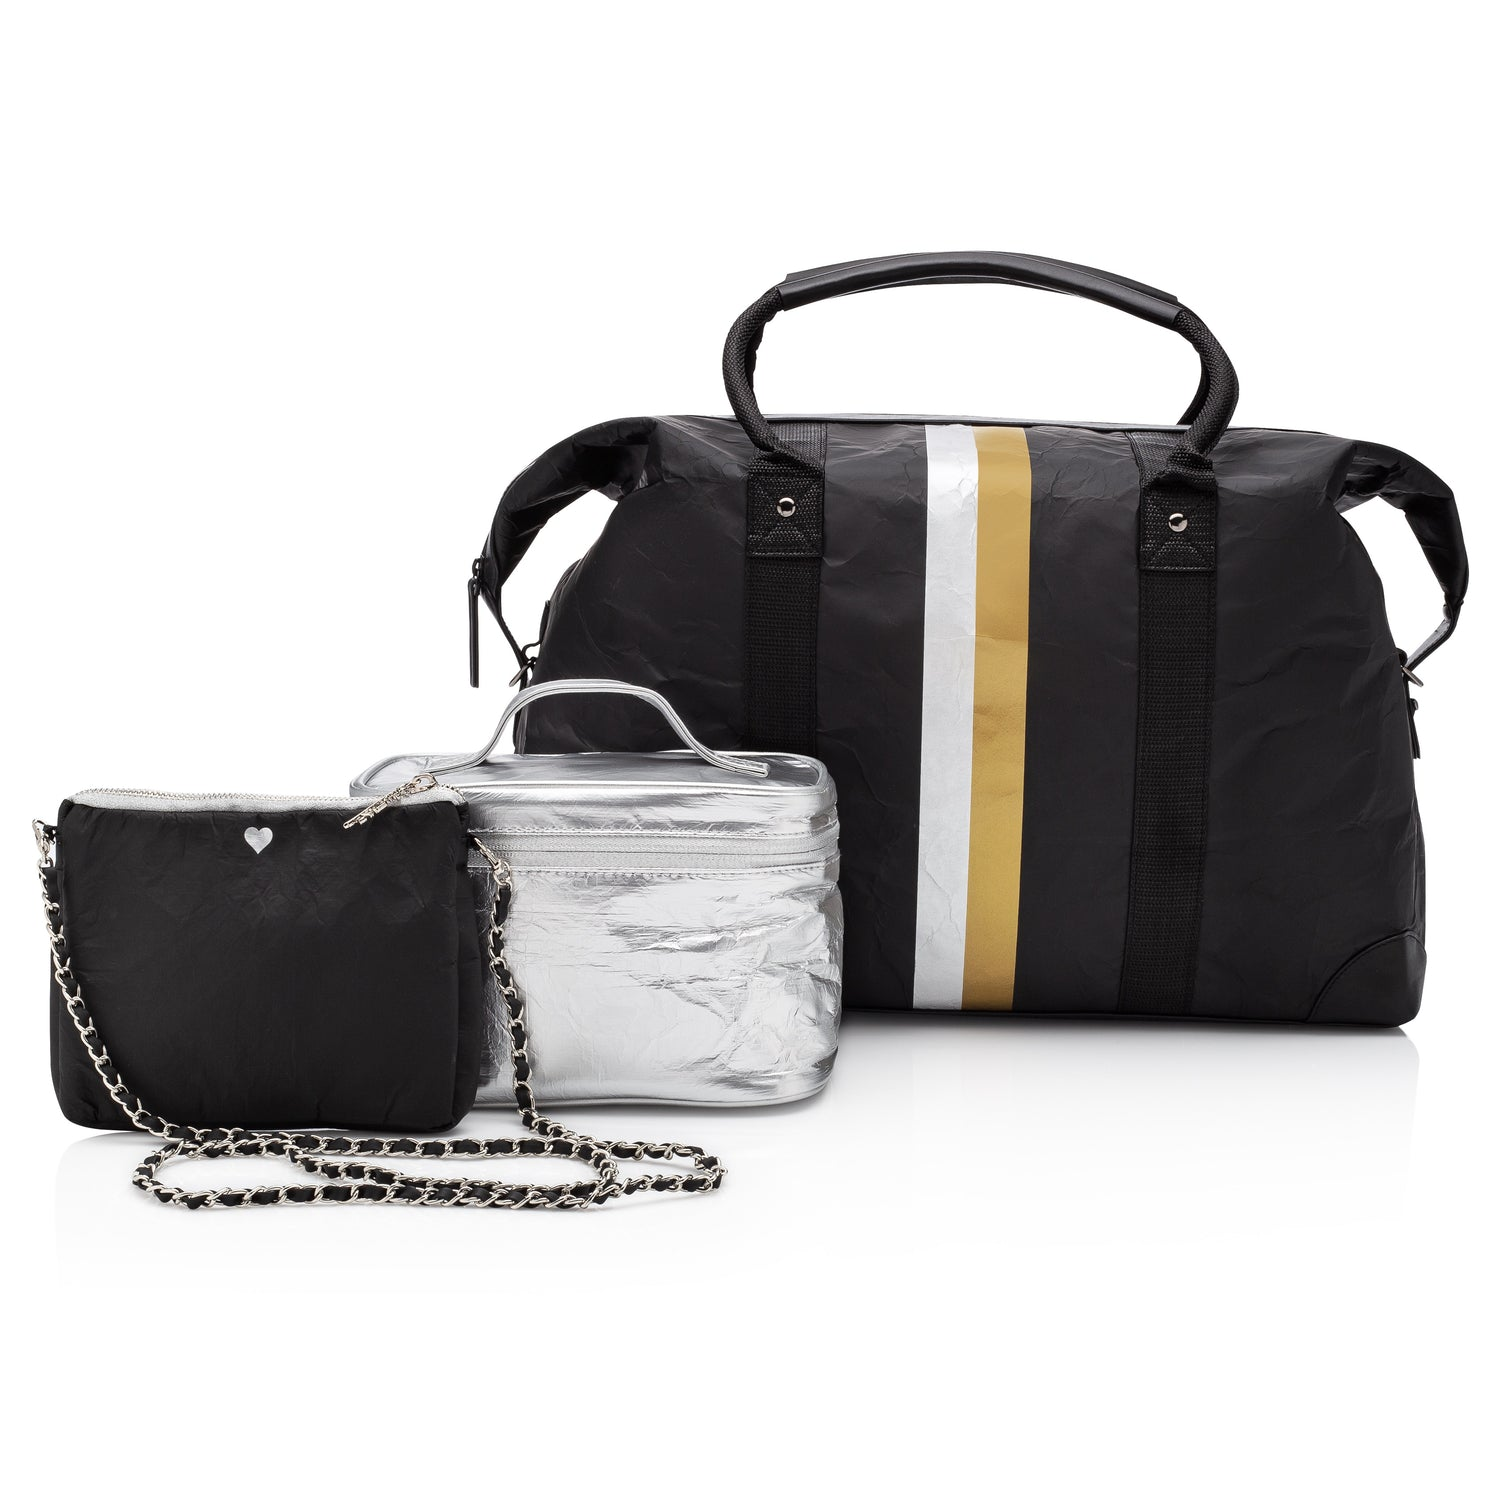 Black and silver splash-resistant travel bag set with weekender carry-on